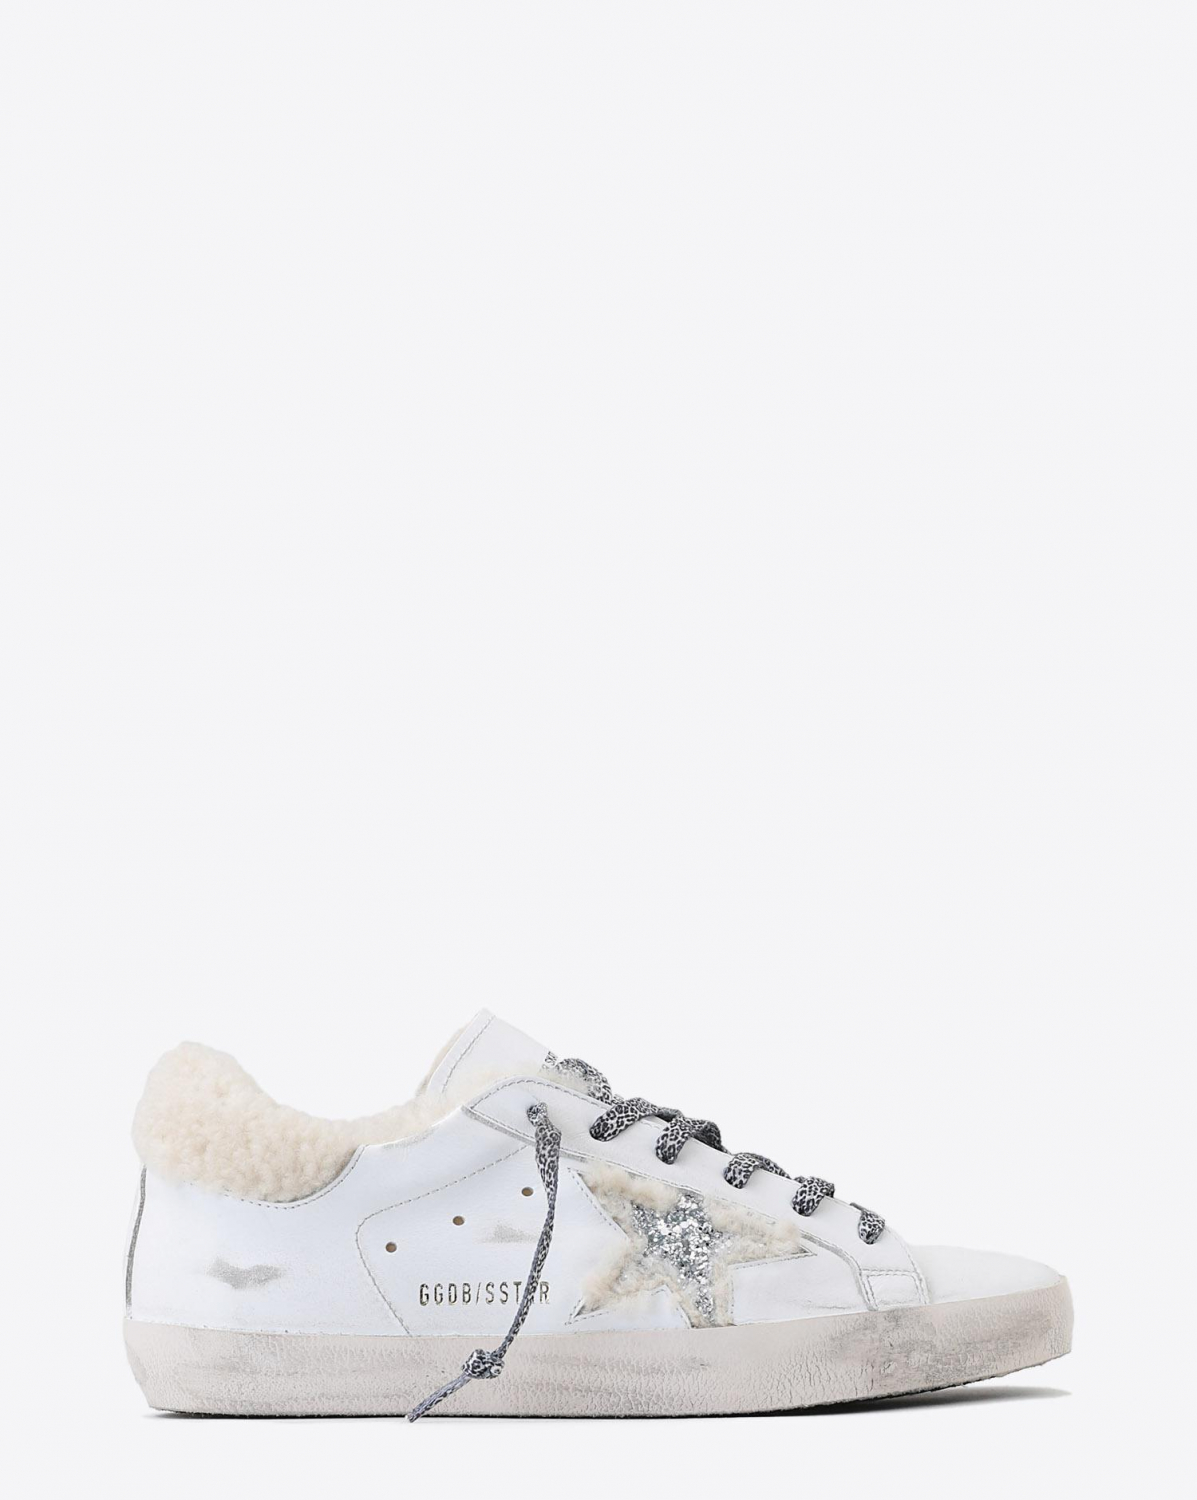 Golden Goose Woman Pré-Collection Sneakers Superstar - White Shearling- Silver Glitter Star